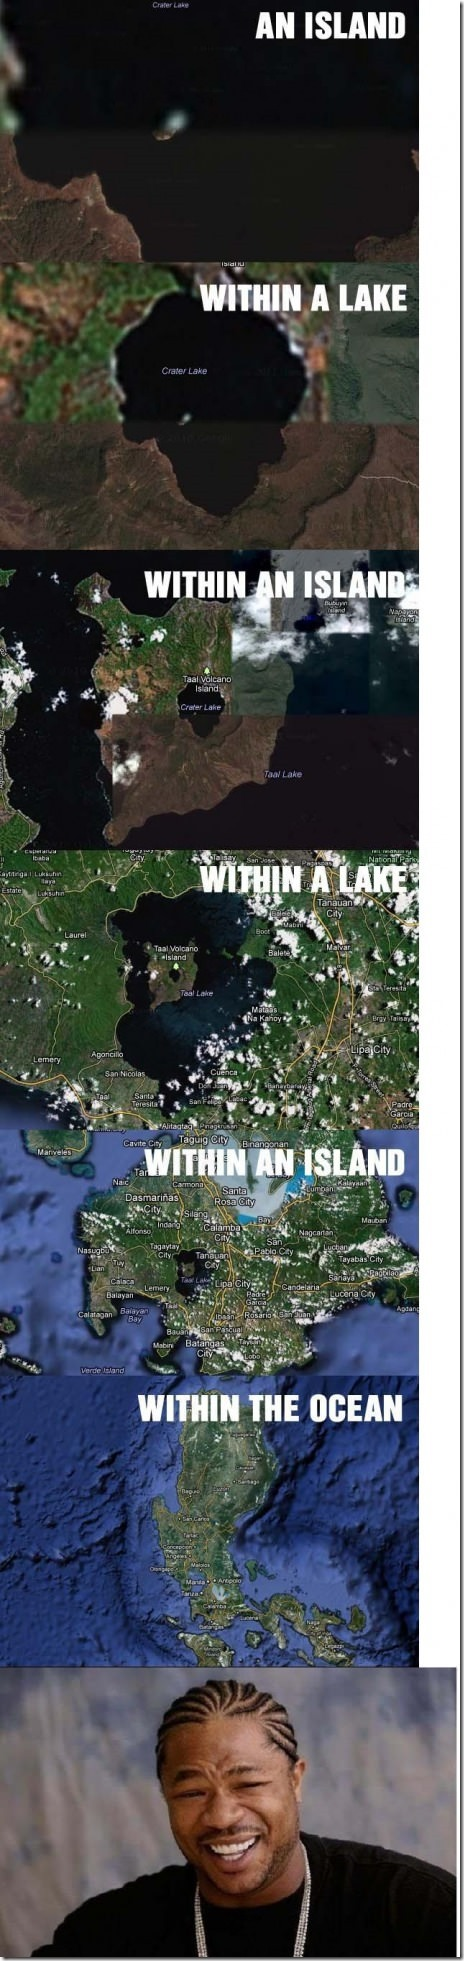 An Island Within a Lake Within an Island Within…